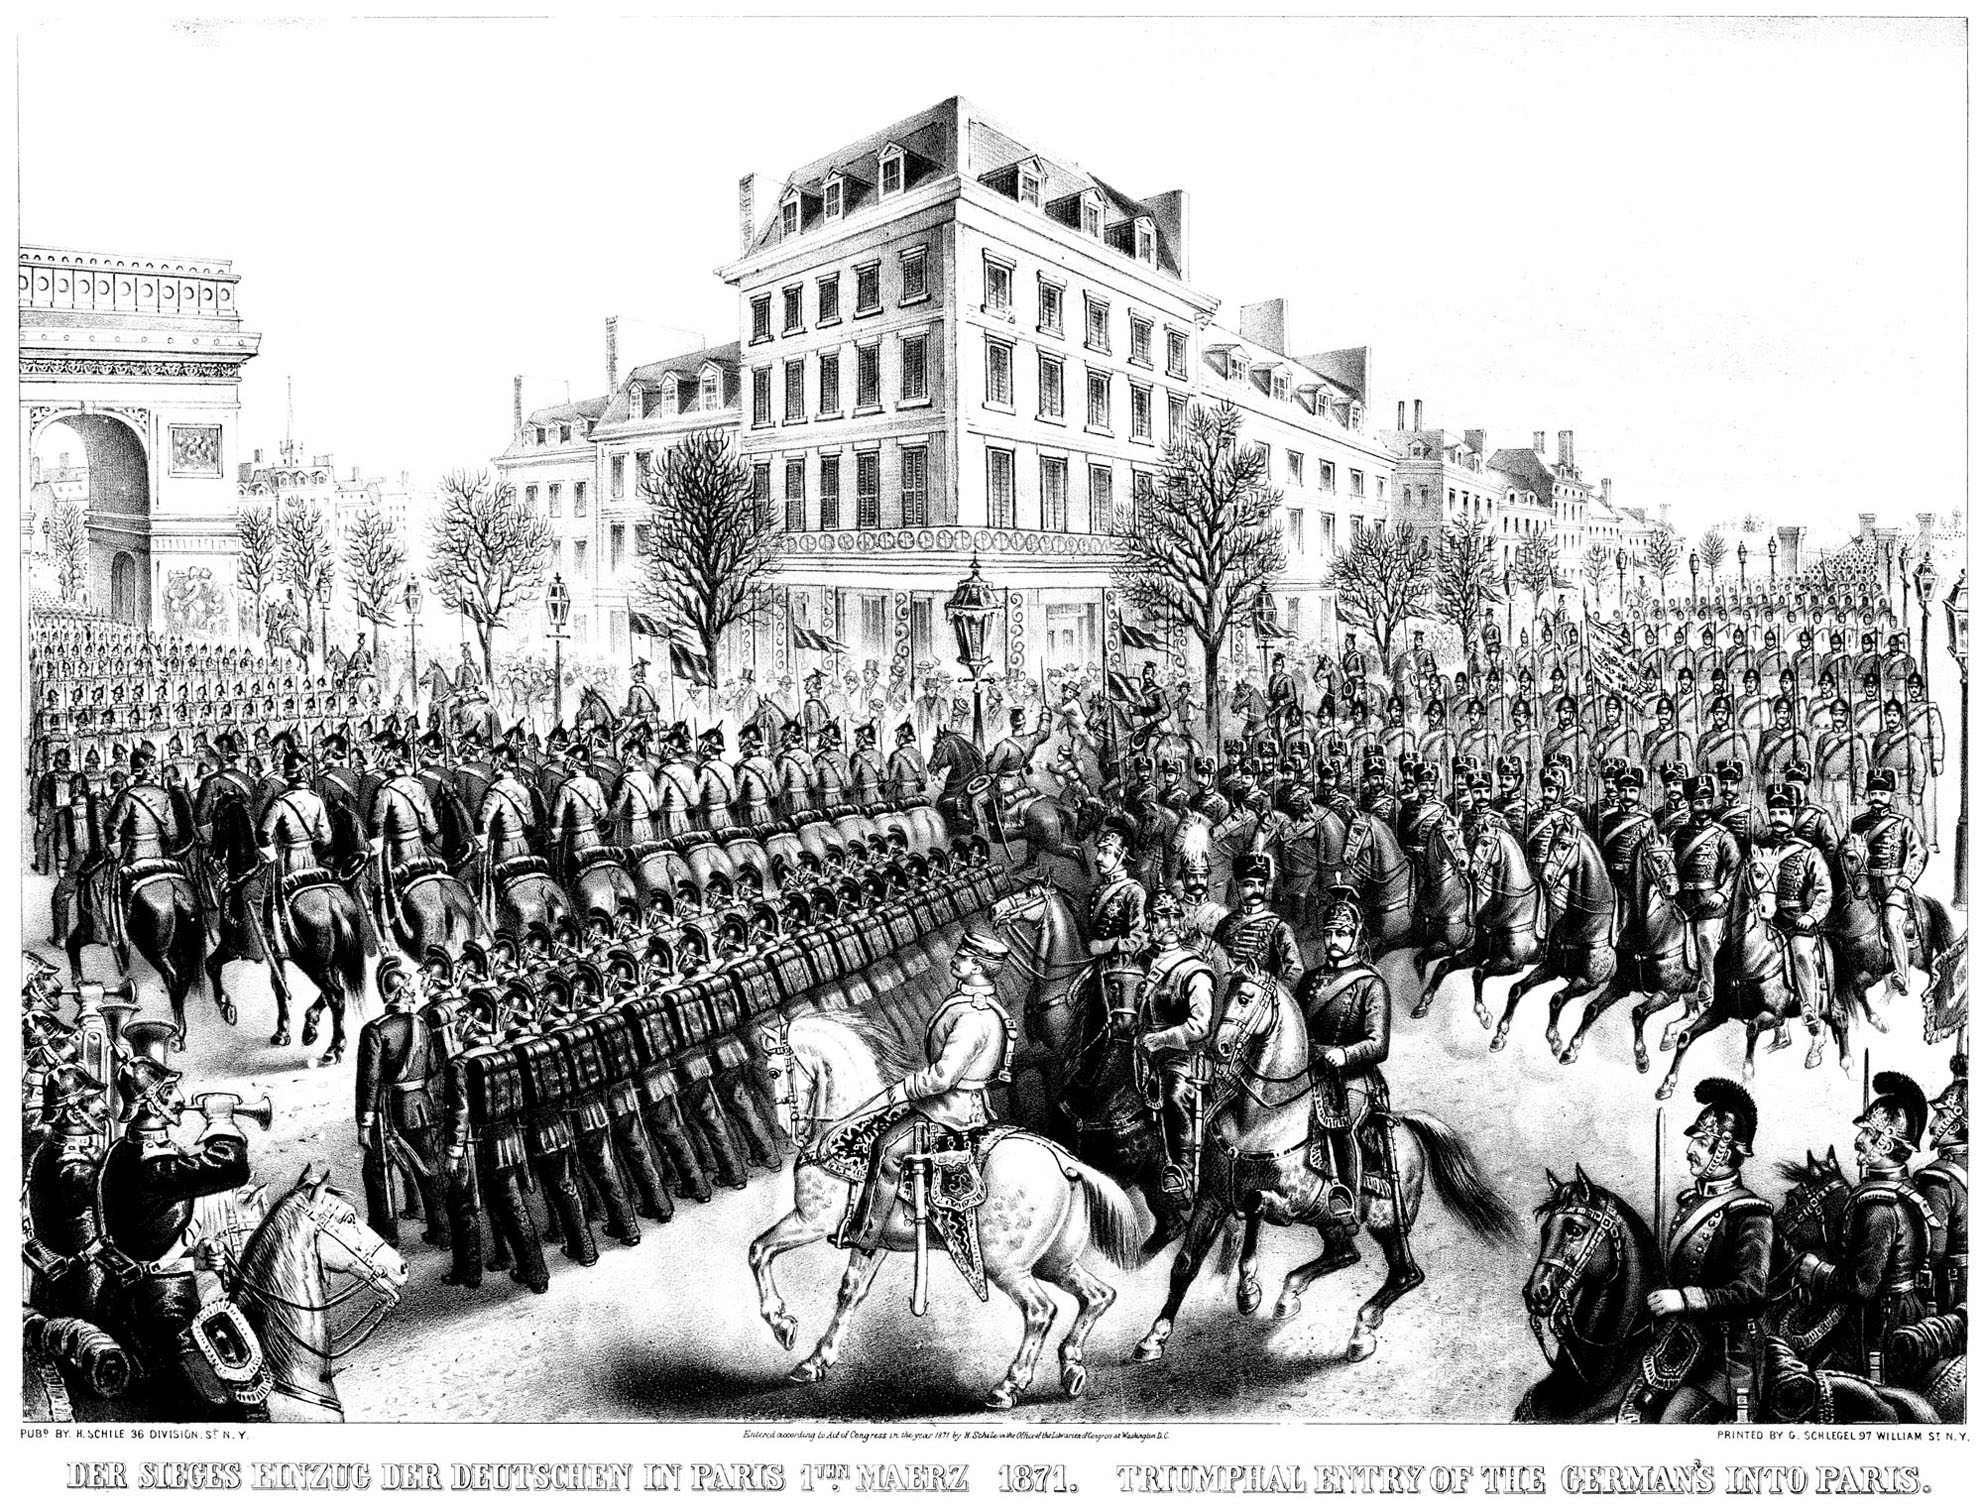 Coloring Page Enter Germans Siege Paris 1870 German Army Entering In During The 19th Century